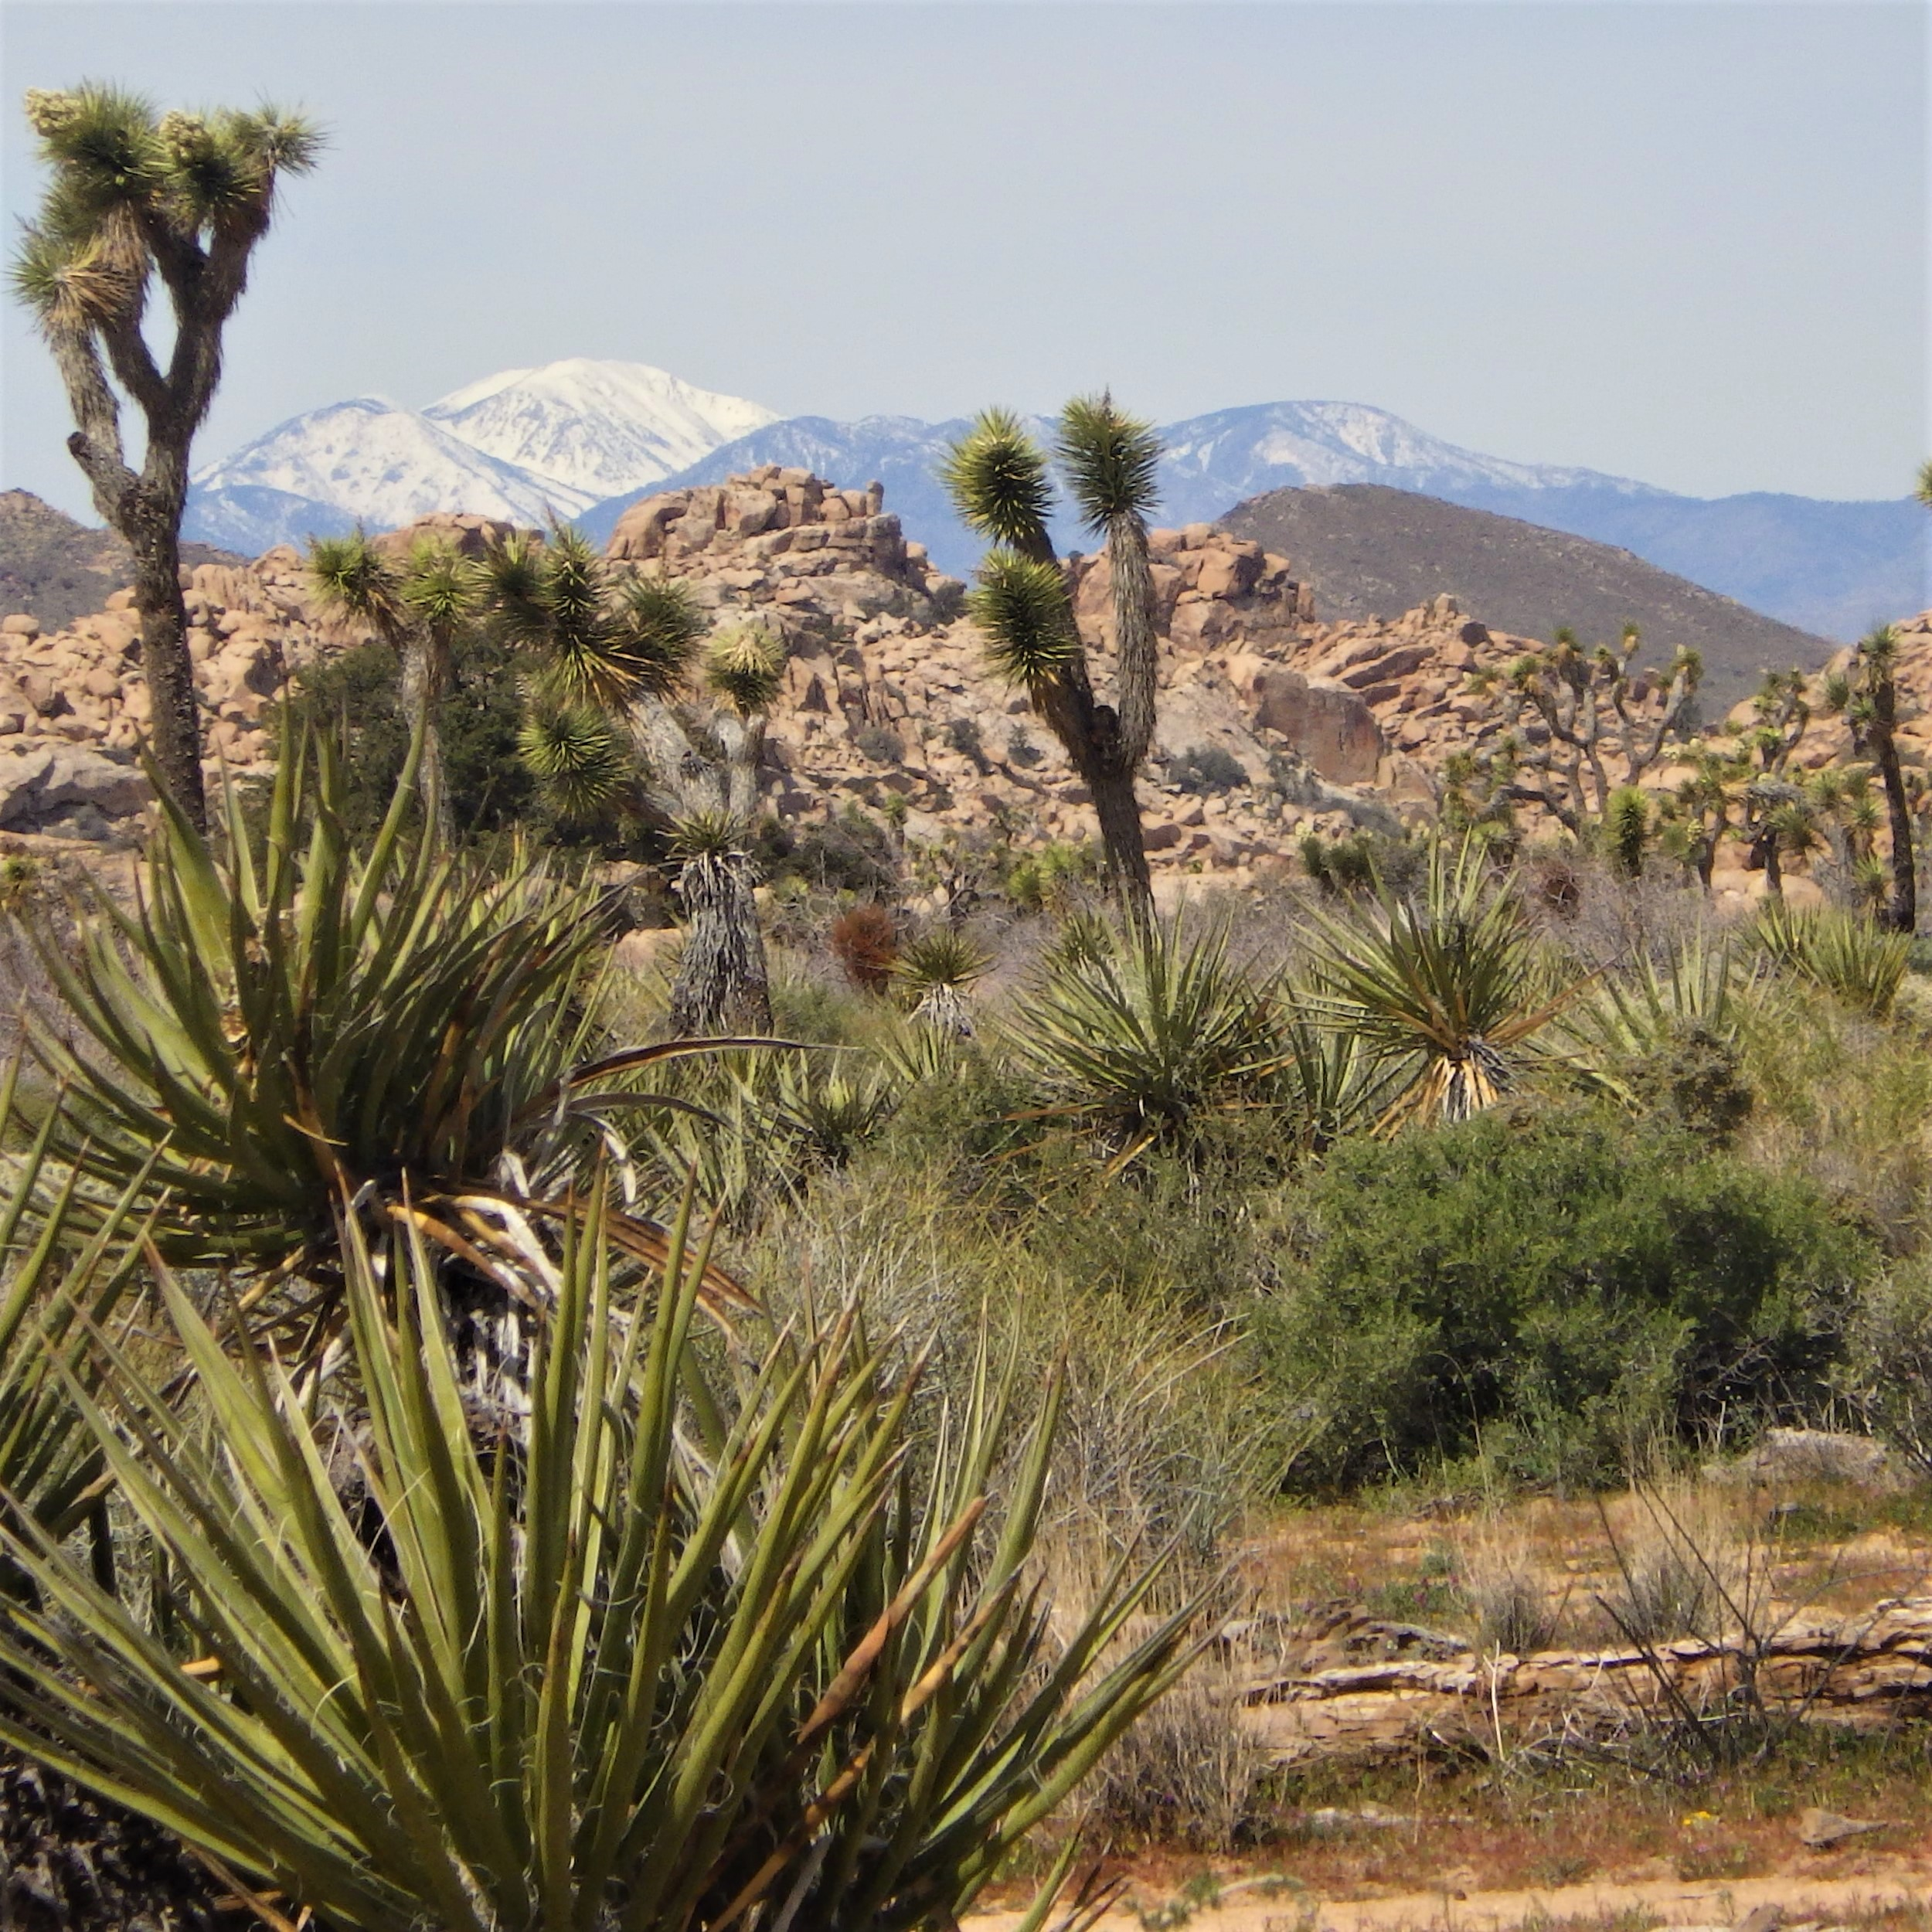 Photo Joshua Tree National Park with Joshua trees and Mount San Gorgonio, photo by Beth Nault-Warner